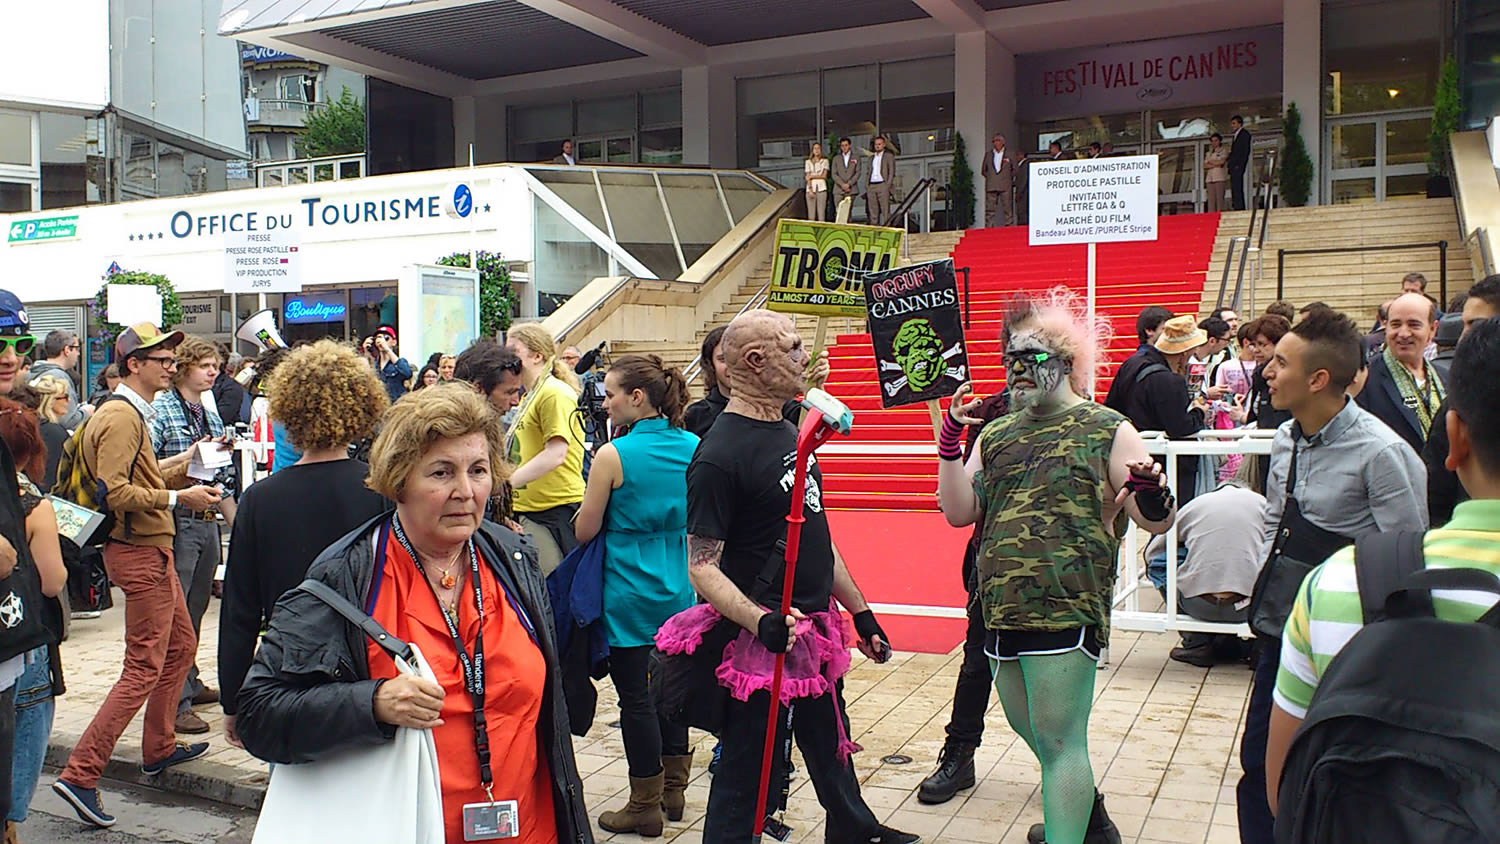 troma. protesters at cannes 2013